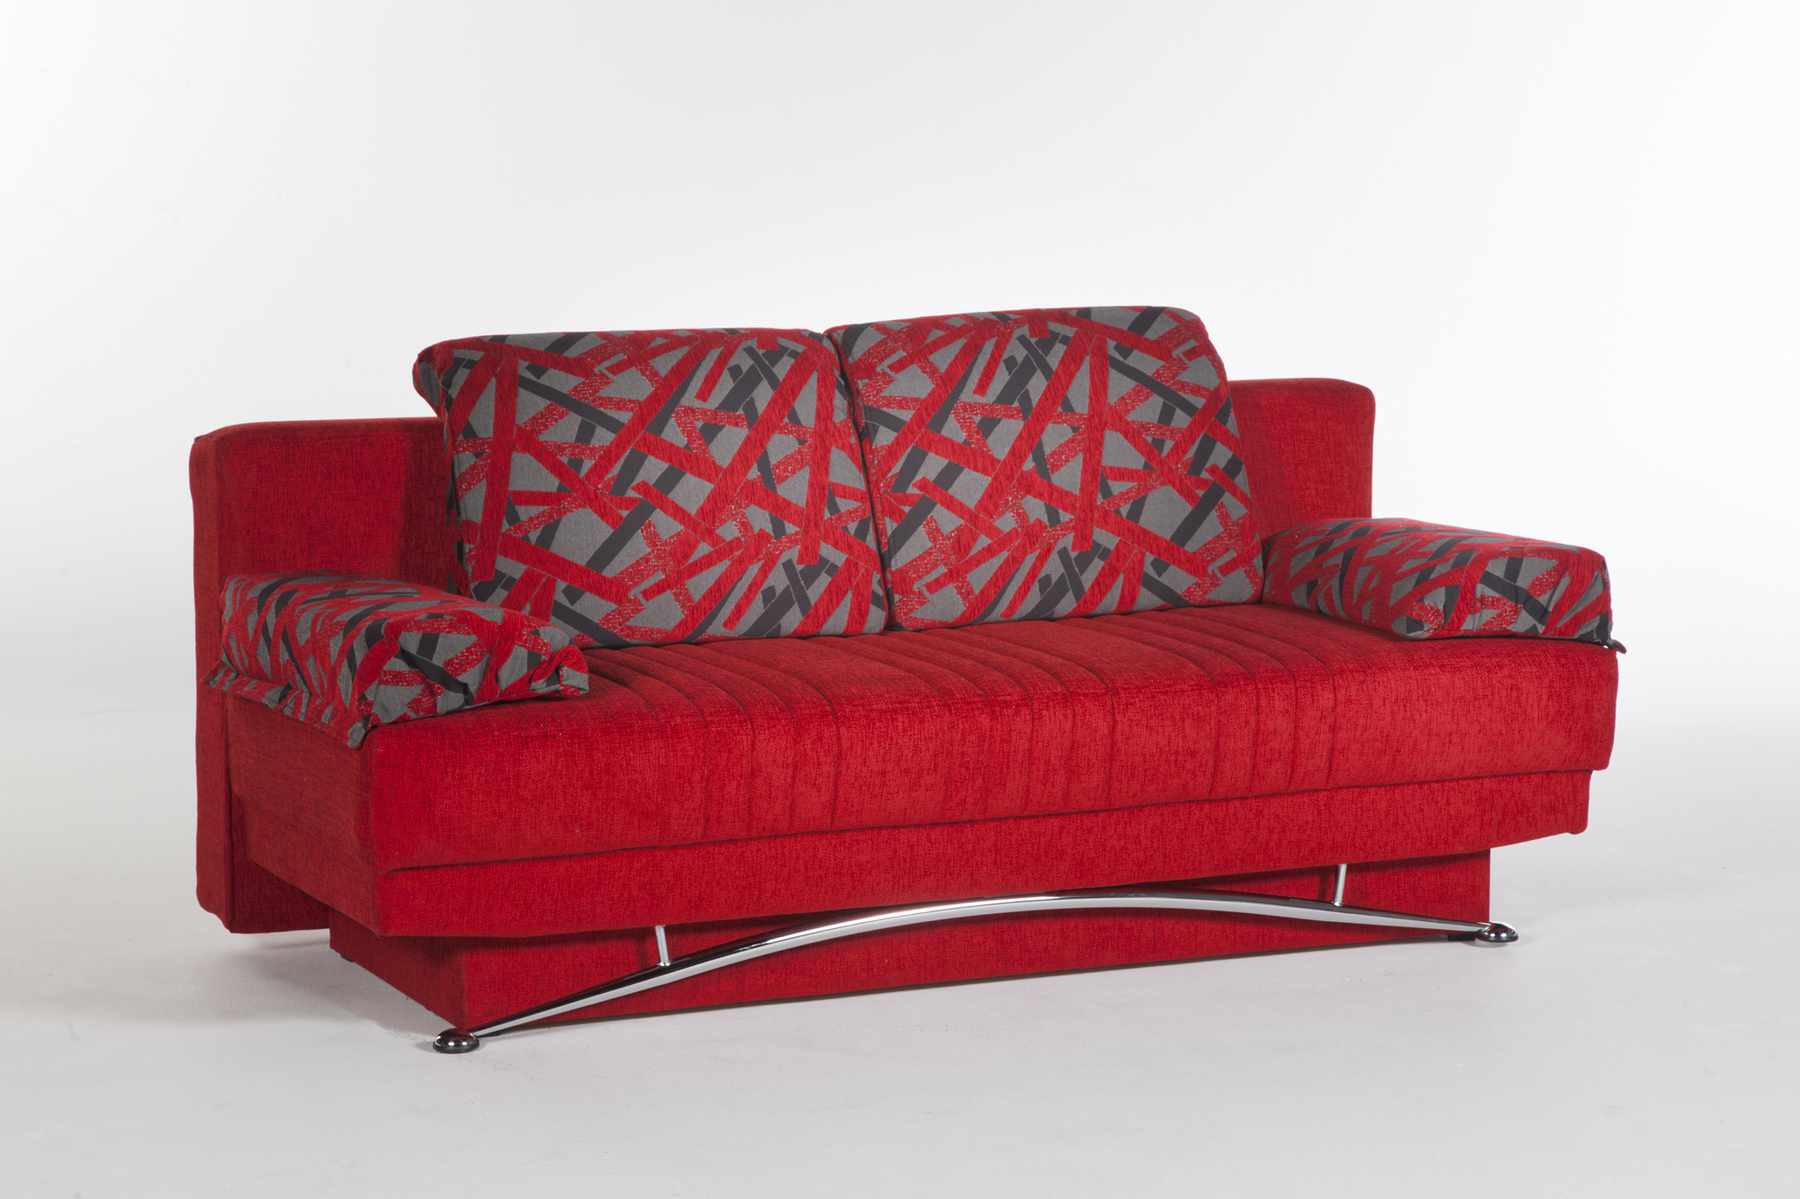 Red Sofas And Chairs Within Popular Fantasy Red Sofa Bed Sufantasy Sunset Furniture (istikbal) Sleeper (View 16 of 20)